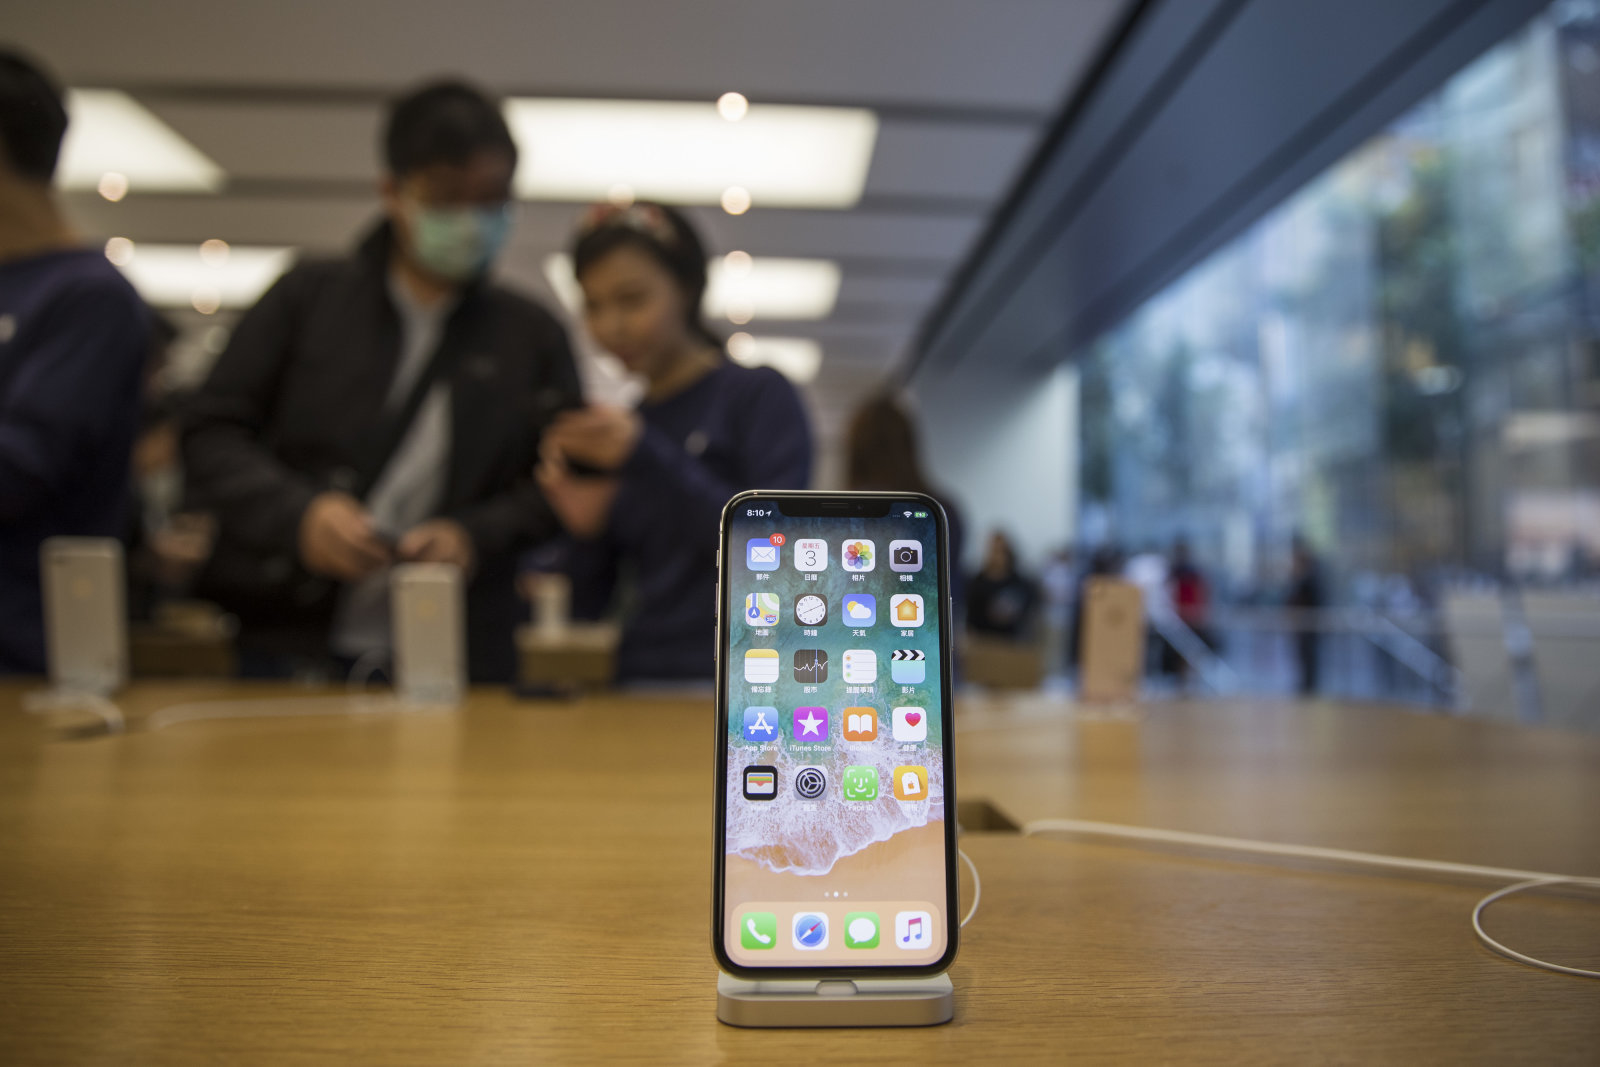 An Apple Inc. iPhone X stands on display at an Apple store during its launch in Hong Kong, China, on Friday, Nov. 3, 2017. Long lines formed outside Apple stores around the world, a sign of strong demand from consumers waiting for the company's 10th anniversary iPhone X. Photographer: Justin Chin/Bloomberg via Getty Images